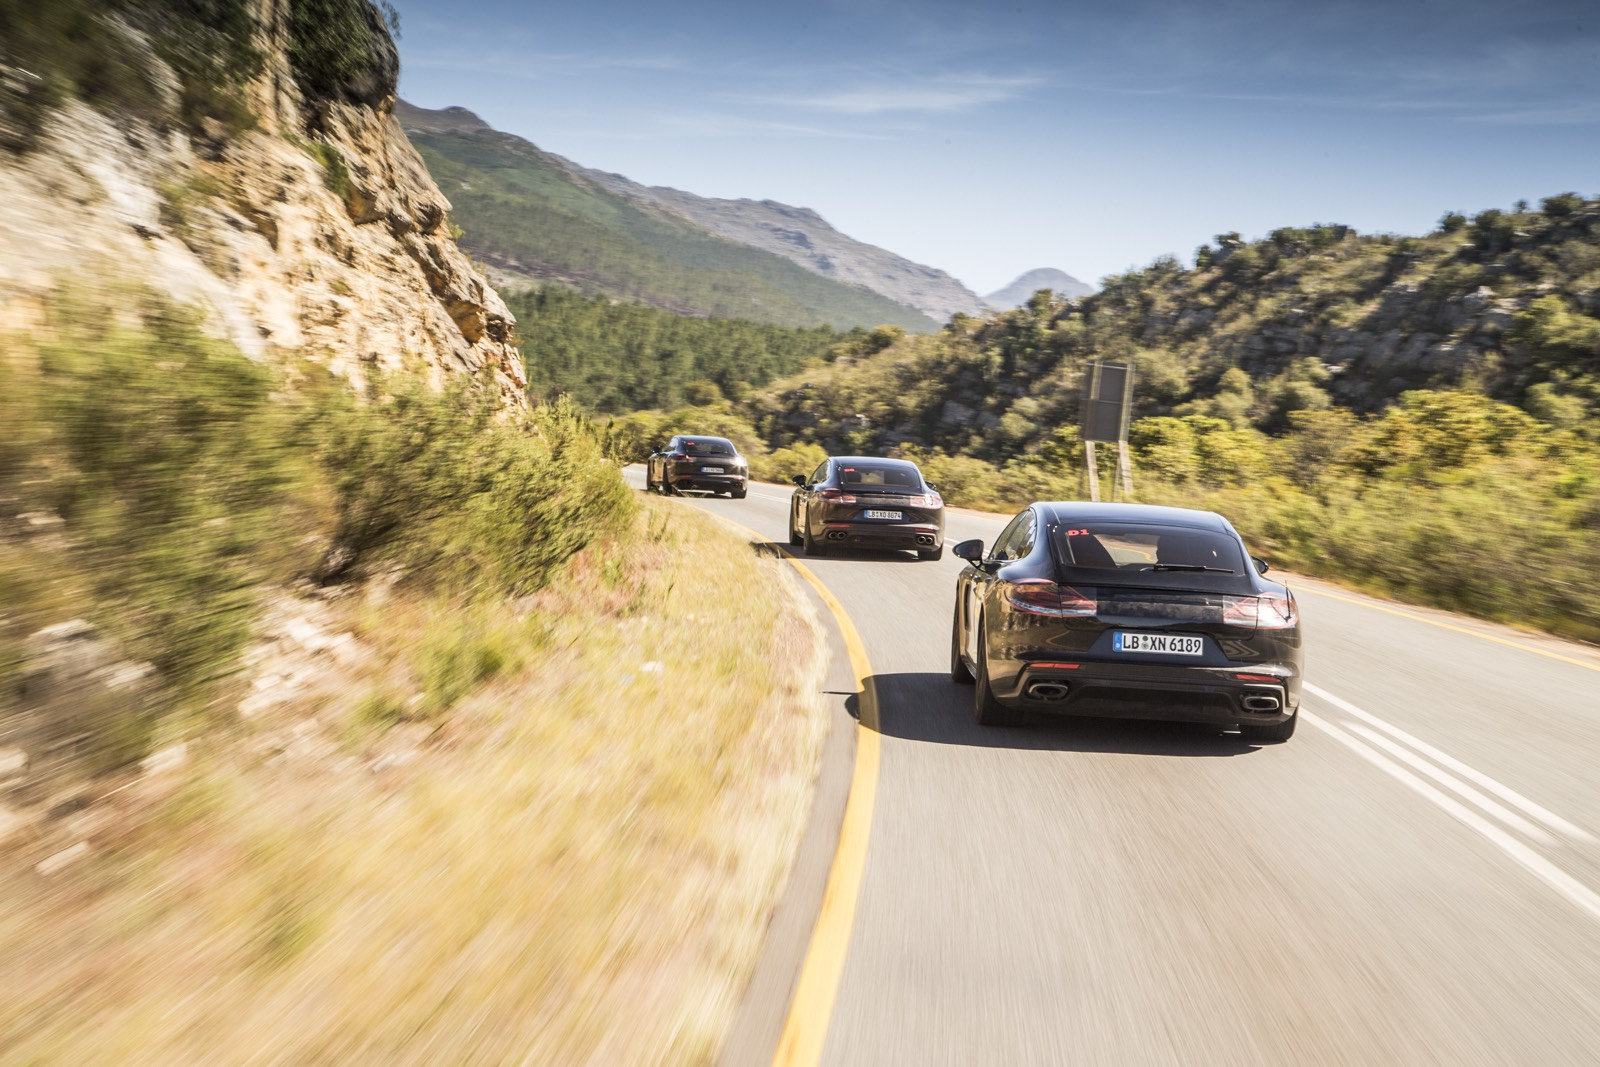 Porsche Panamera 971 Prototype Review – Big Bang for the New Architecture